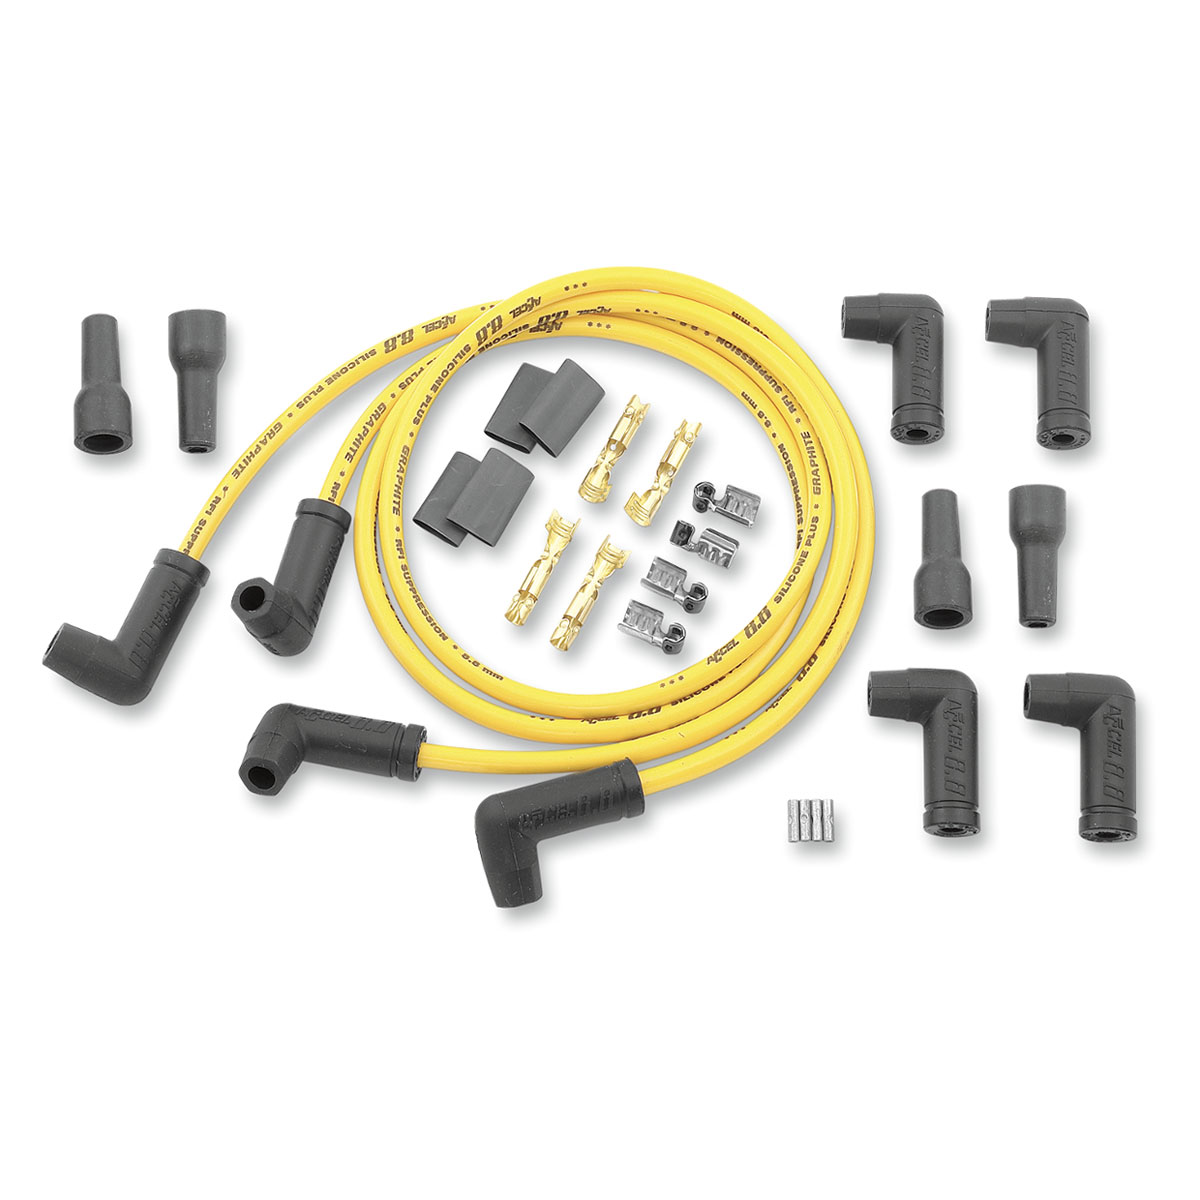 ACCEL Universal 8.8mm Replacement Wires